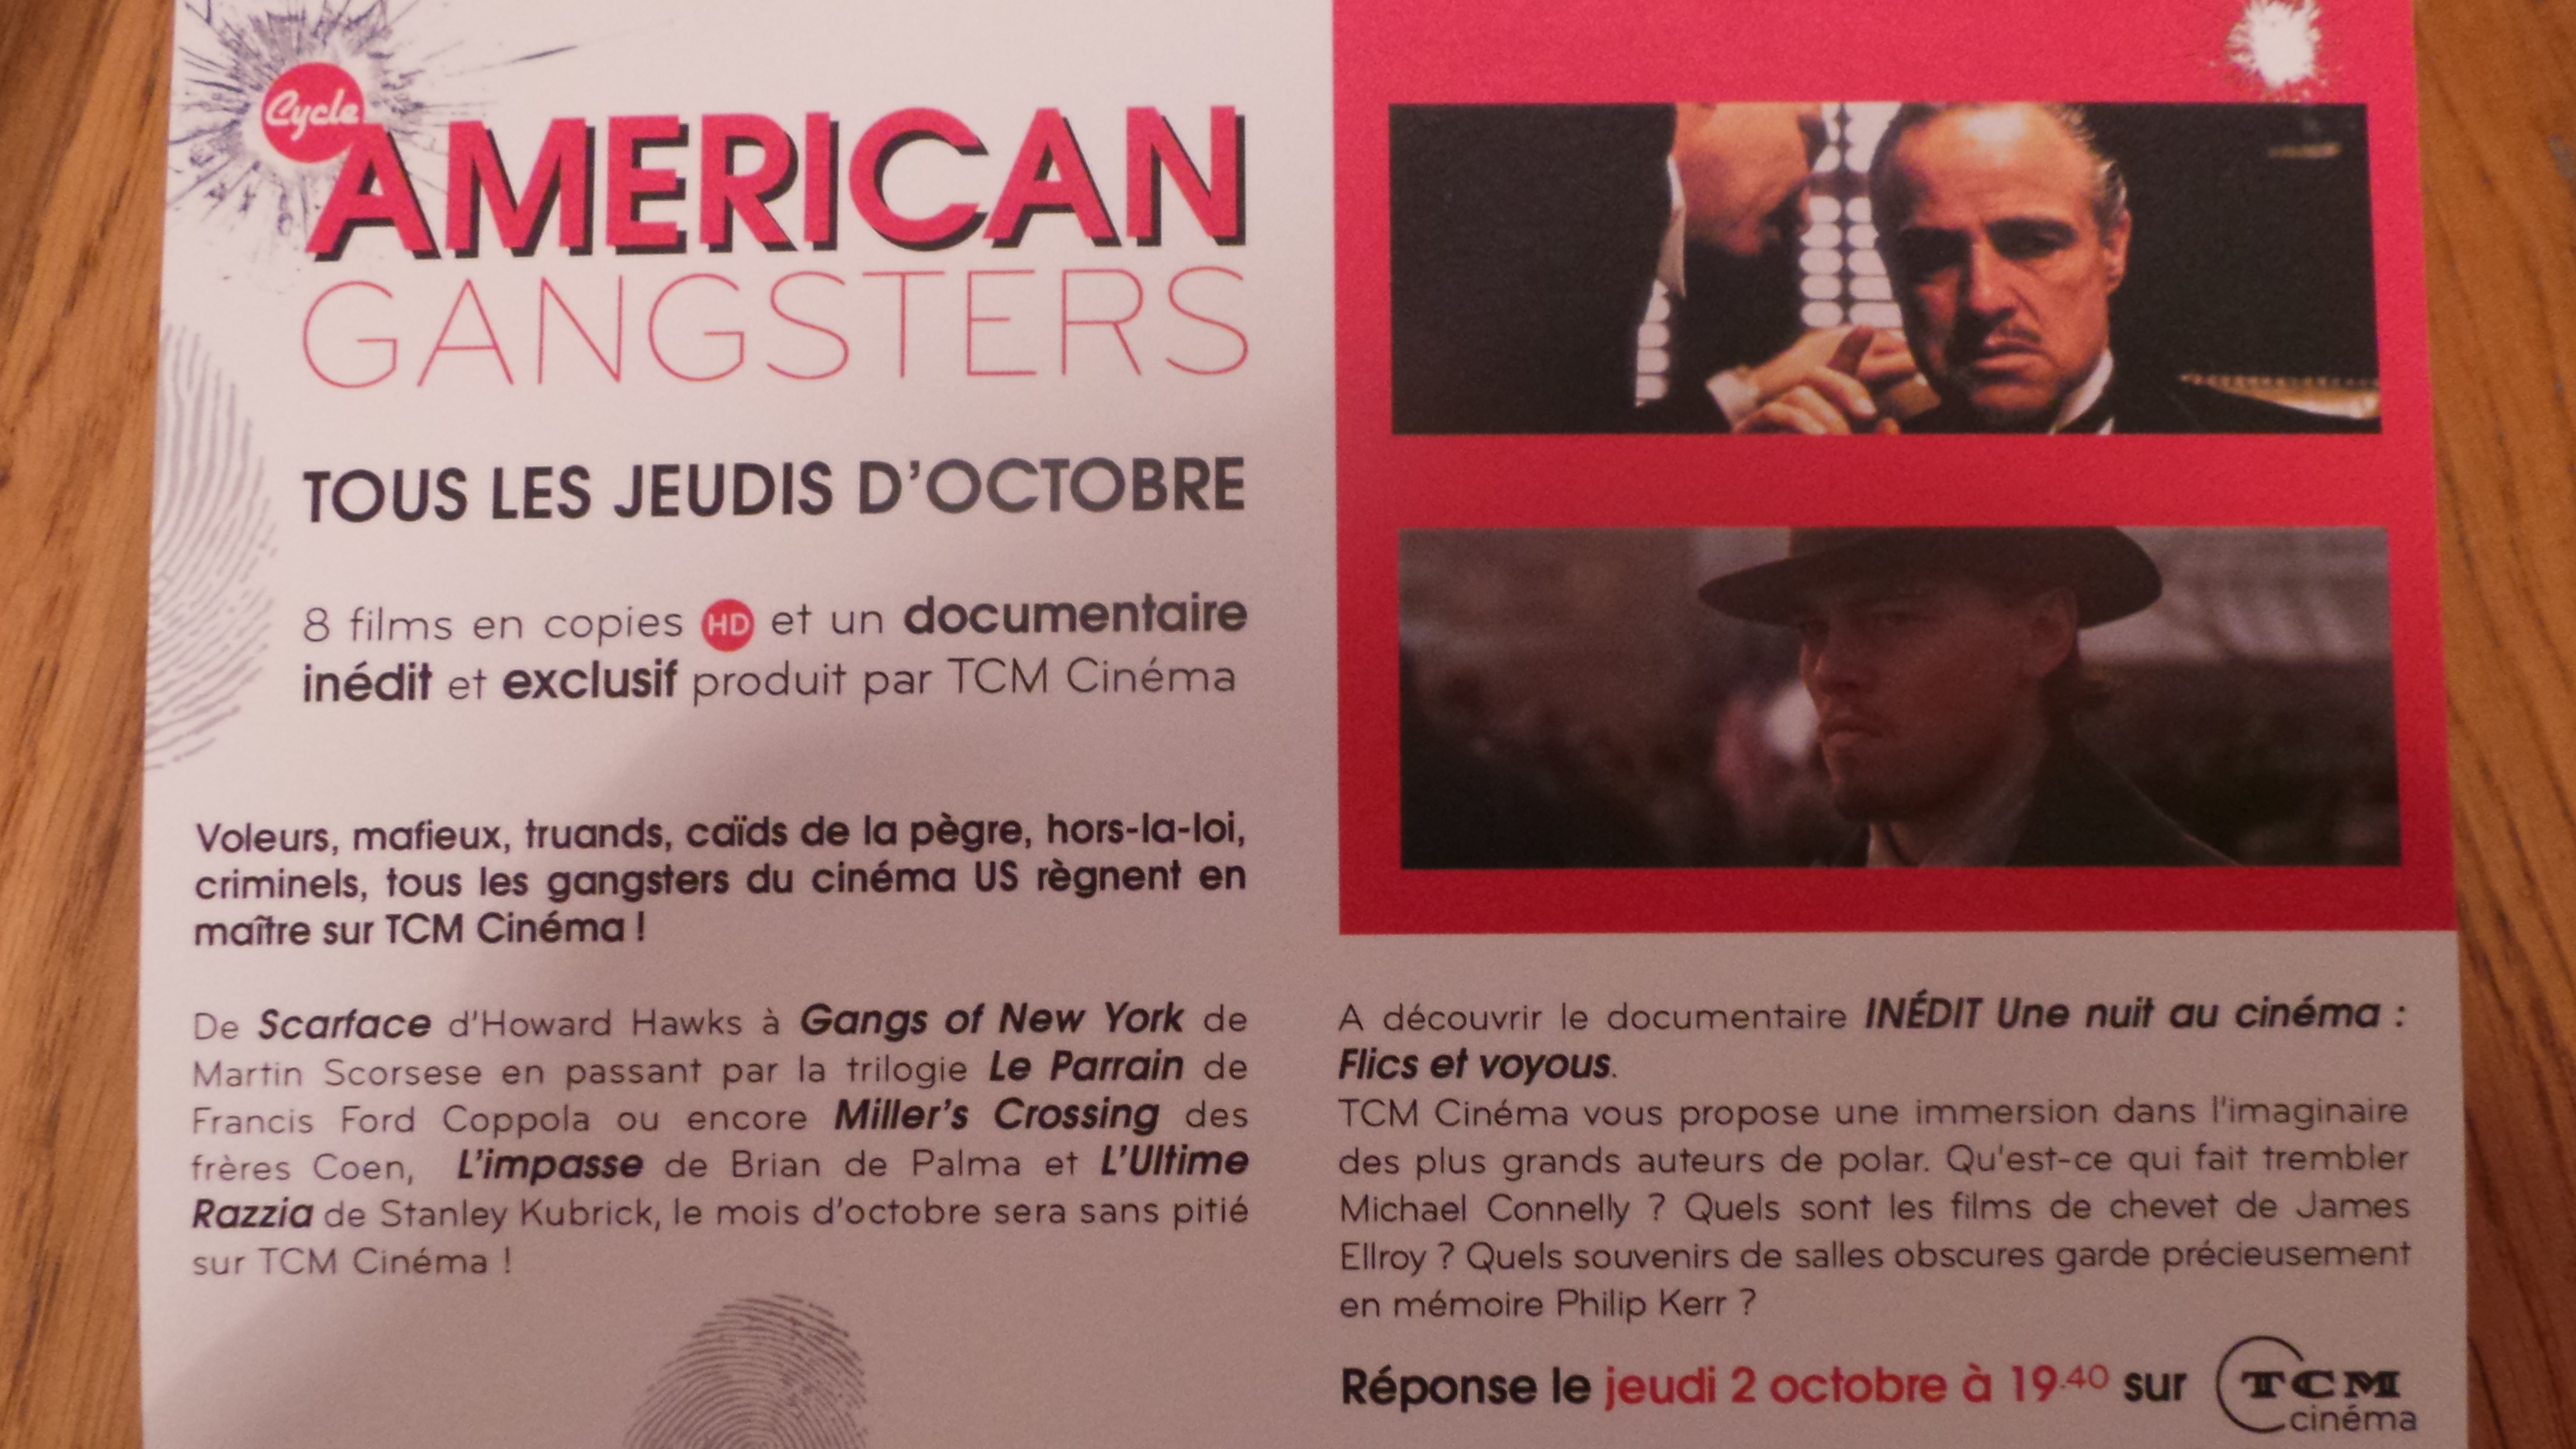 Cycle American Gangsters TCM Cinéma - Visuel 2 - Go with the Blog